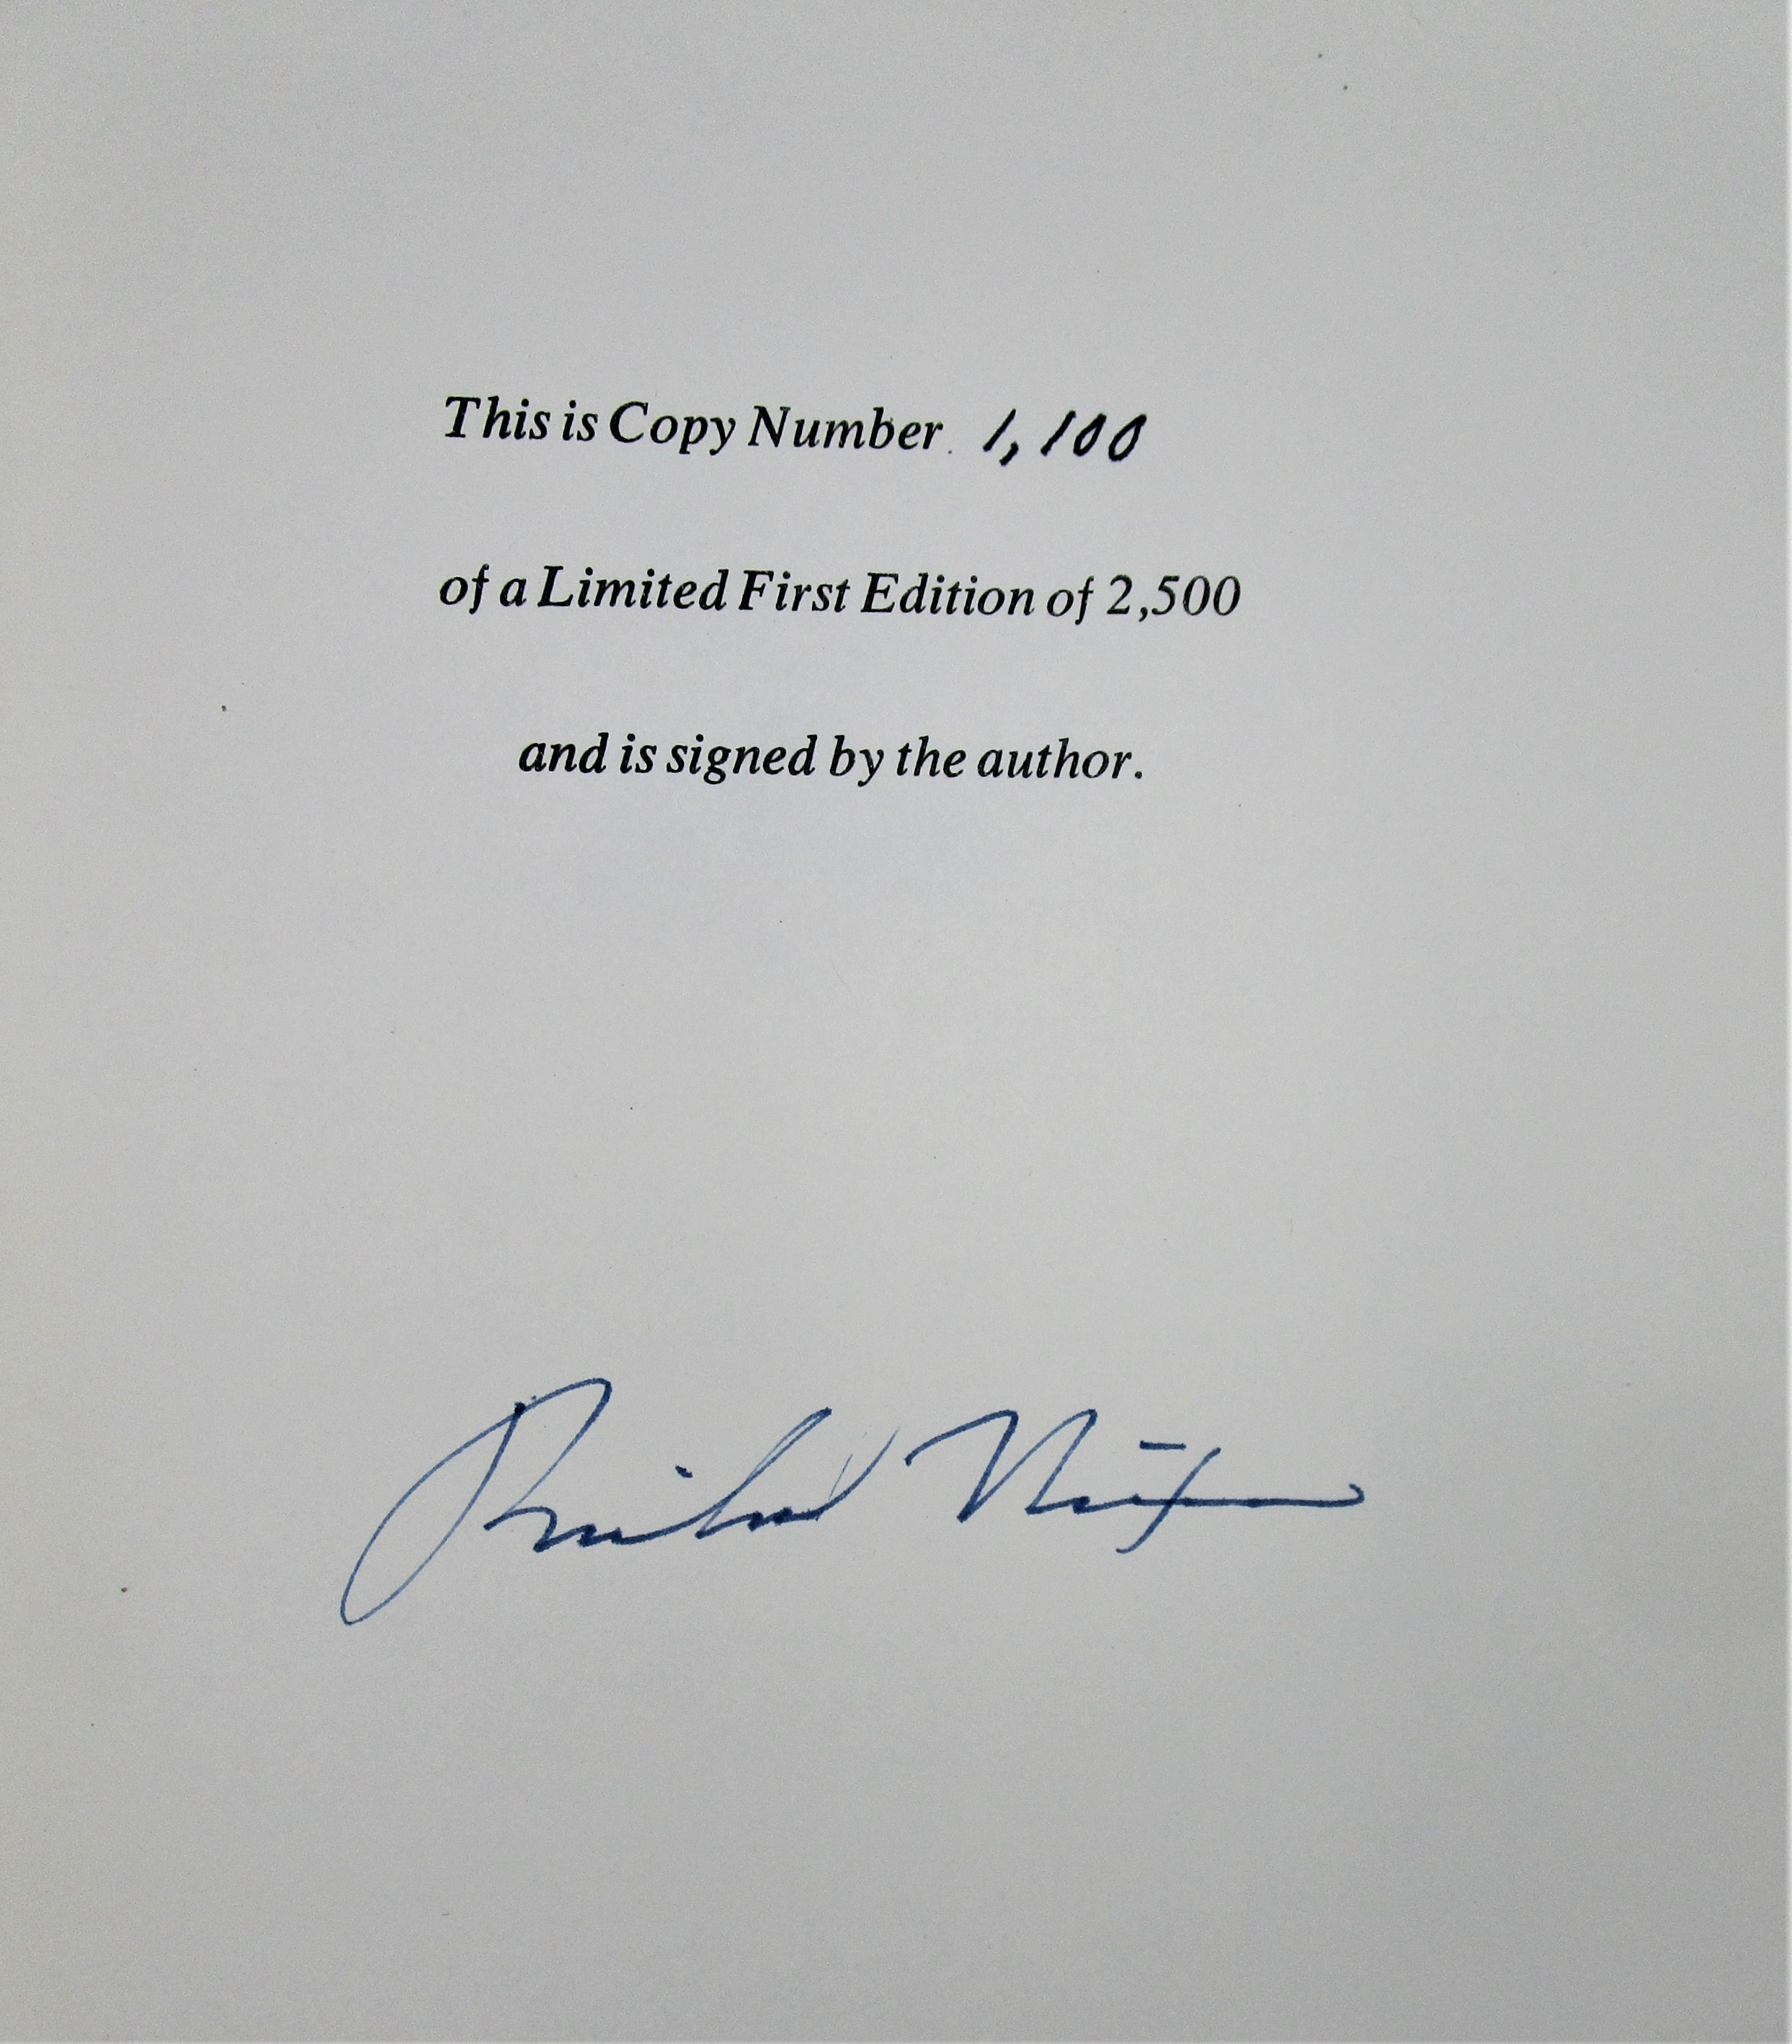 THE MEMOIRS OF RICHARD NIXON - 1978 [Signed Ltd 1st Ed] *COA*